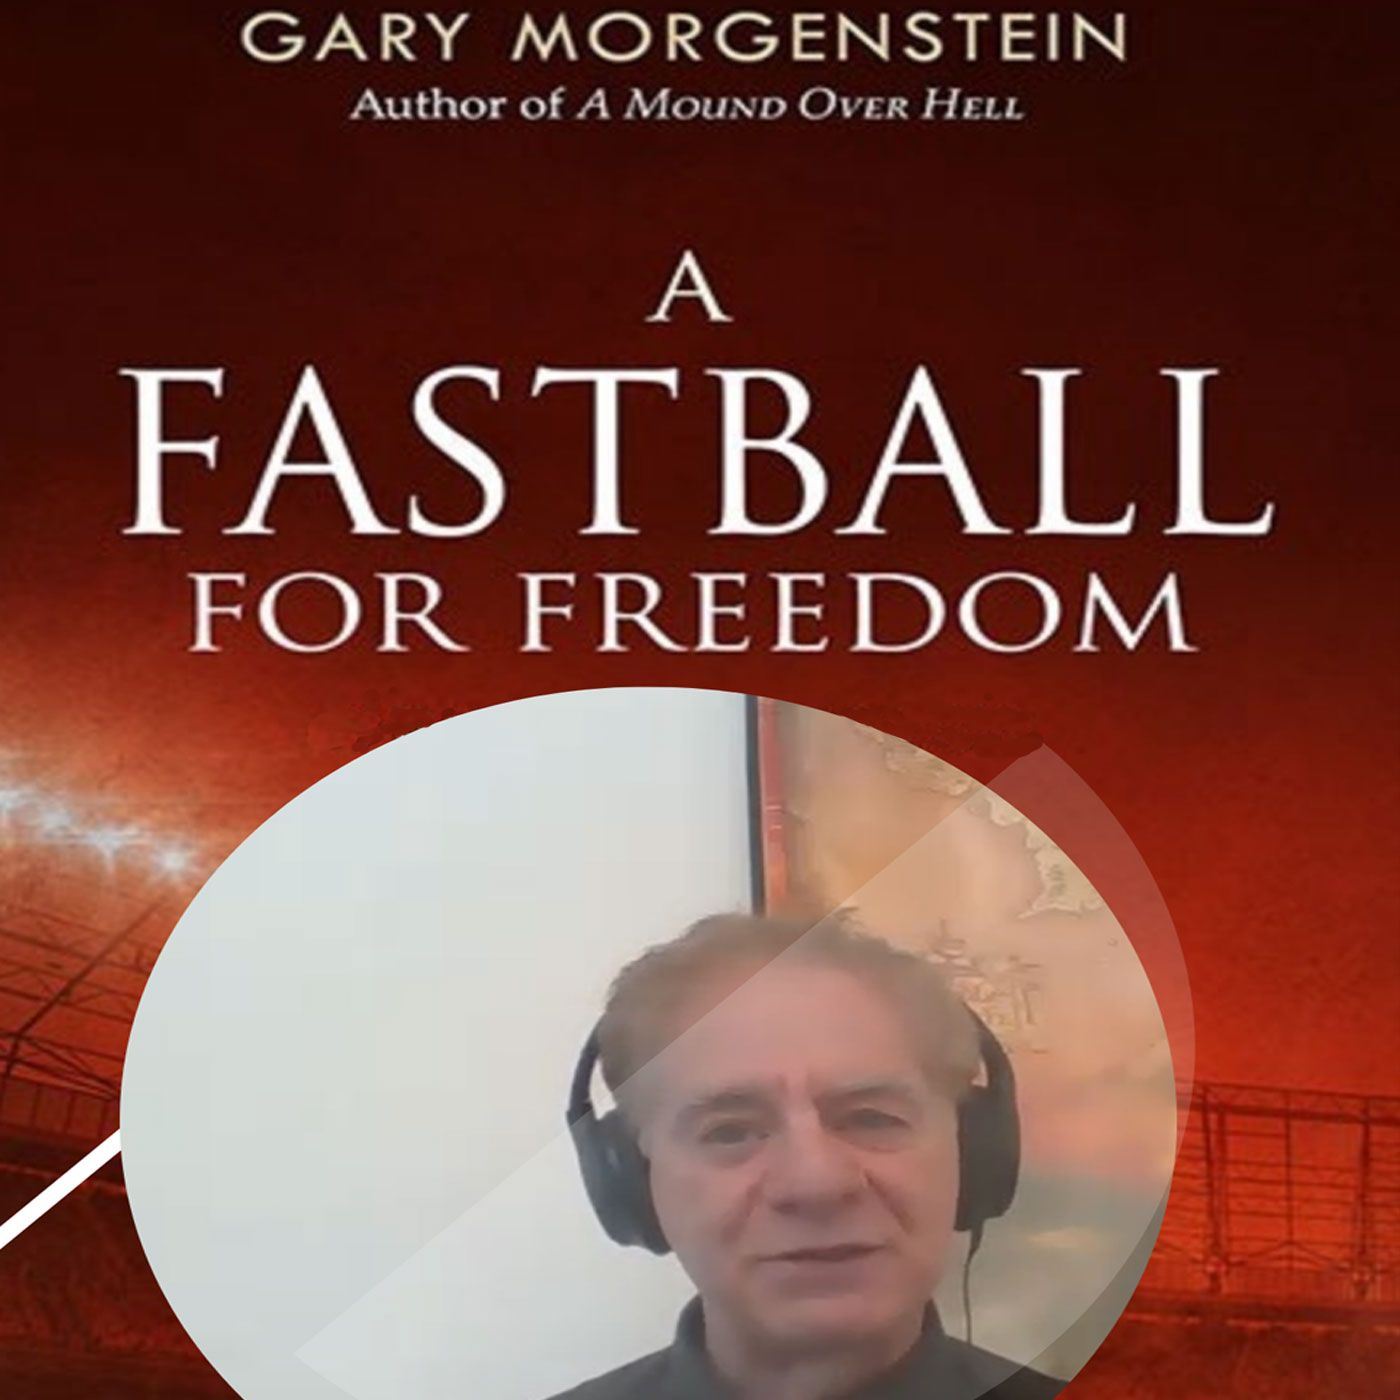 Gary Morgenstein A Fastball For Freedom